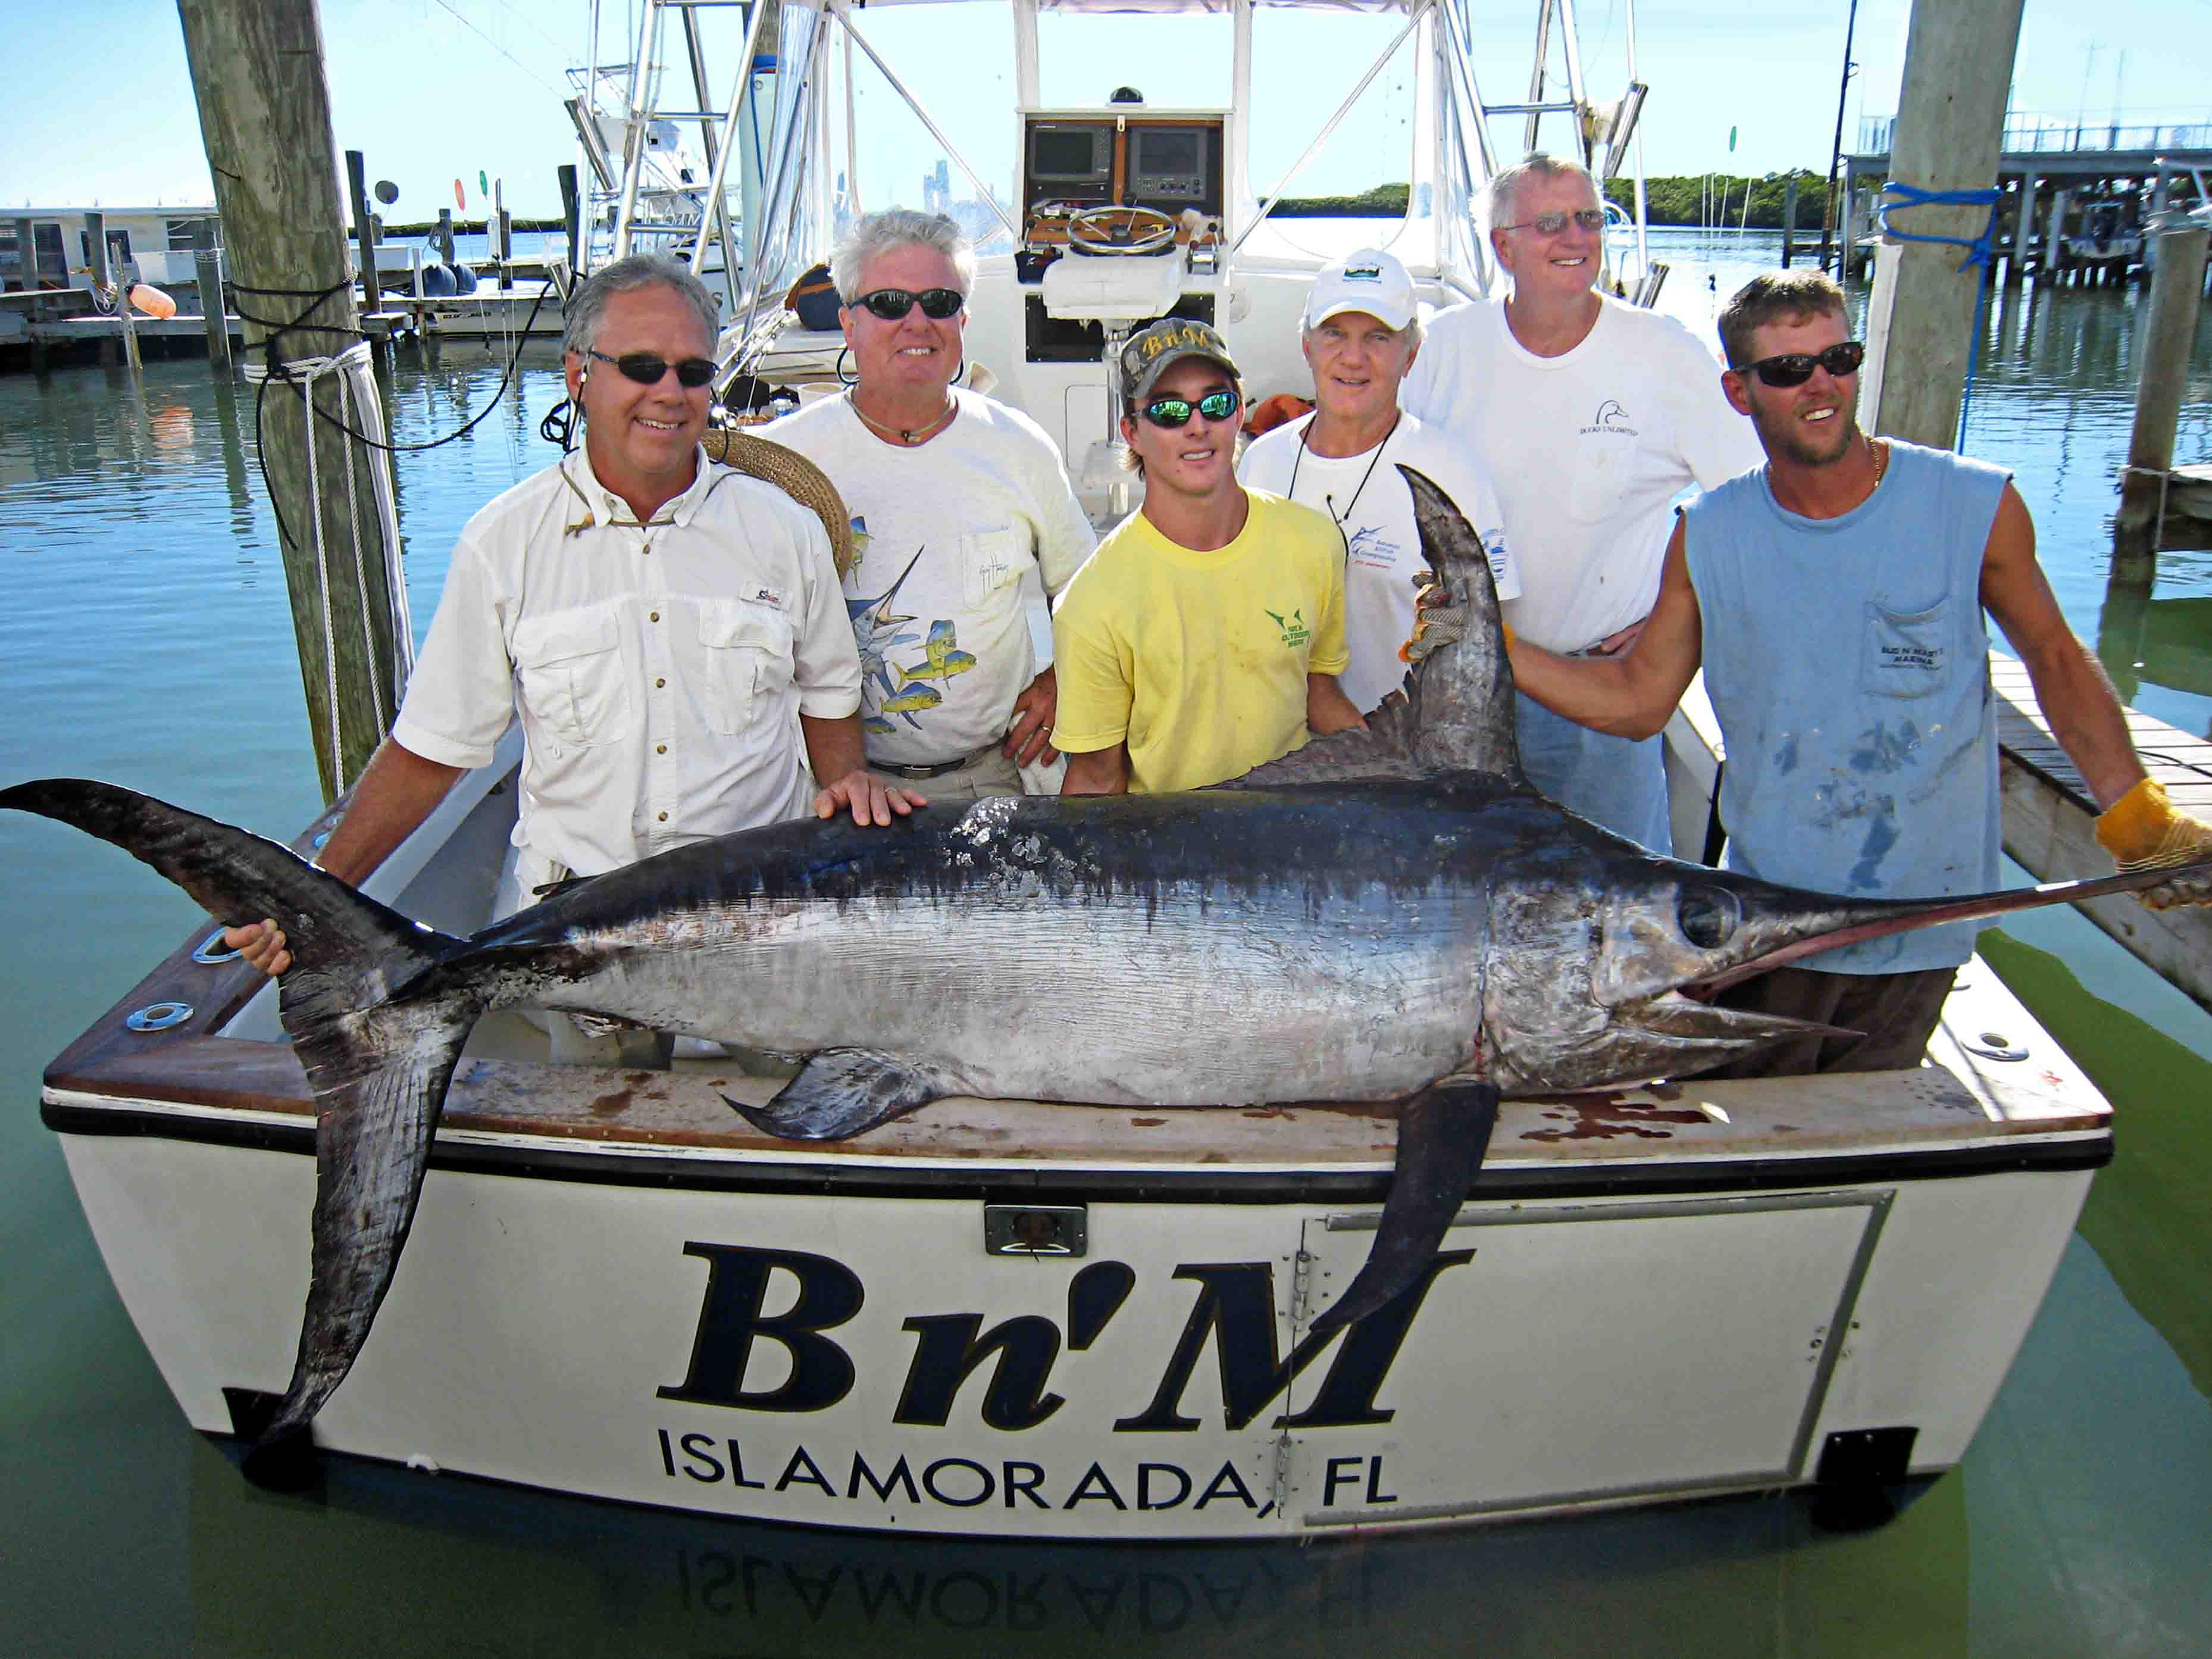 Islamorada fishing charters fishing trips florida keys for Florida fishing vacations